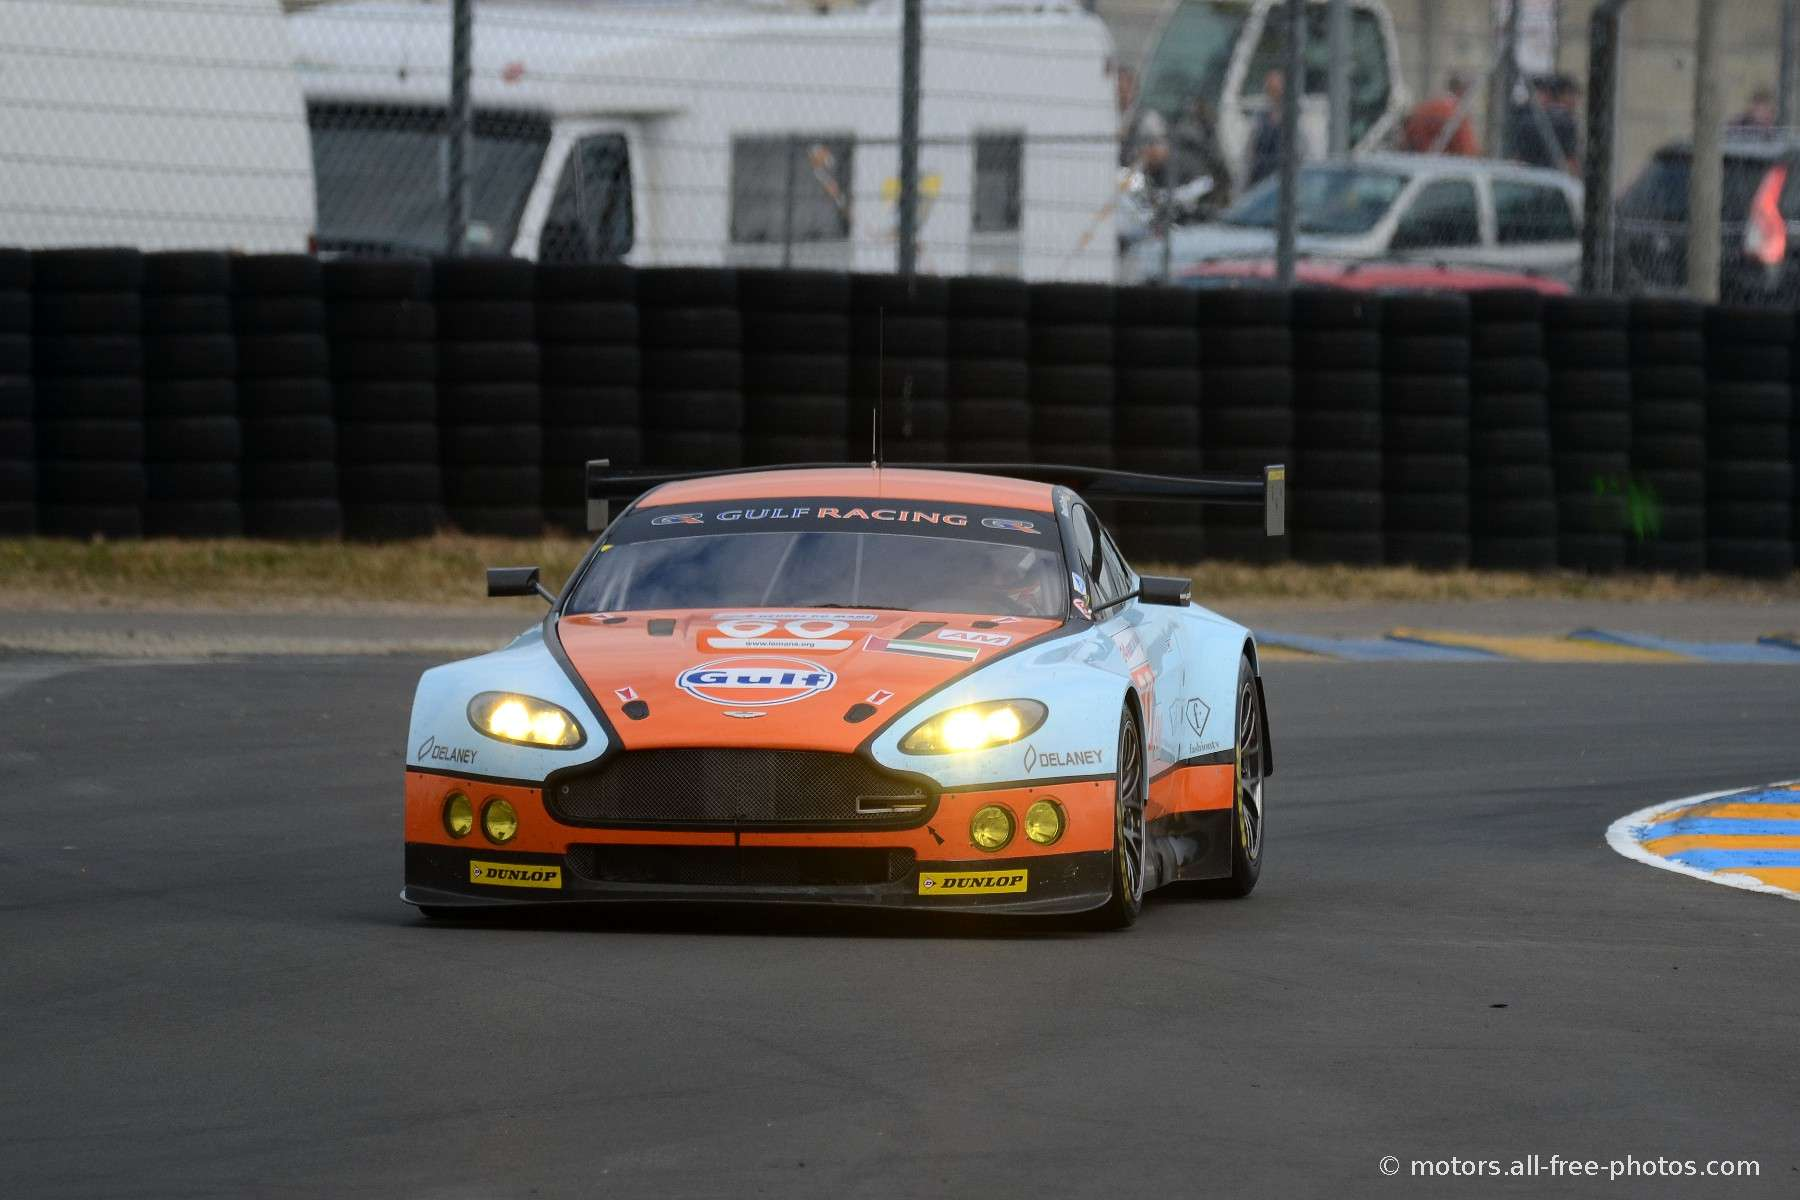 Aston Martin V8 Vantage - Team AMR Middle East